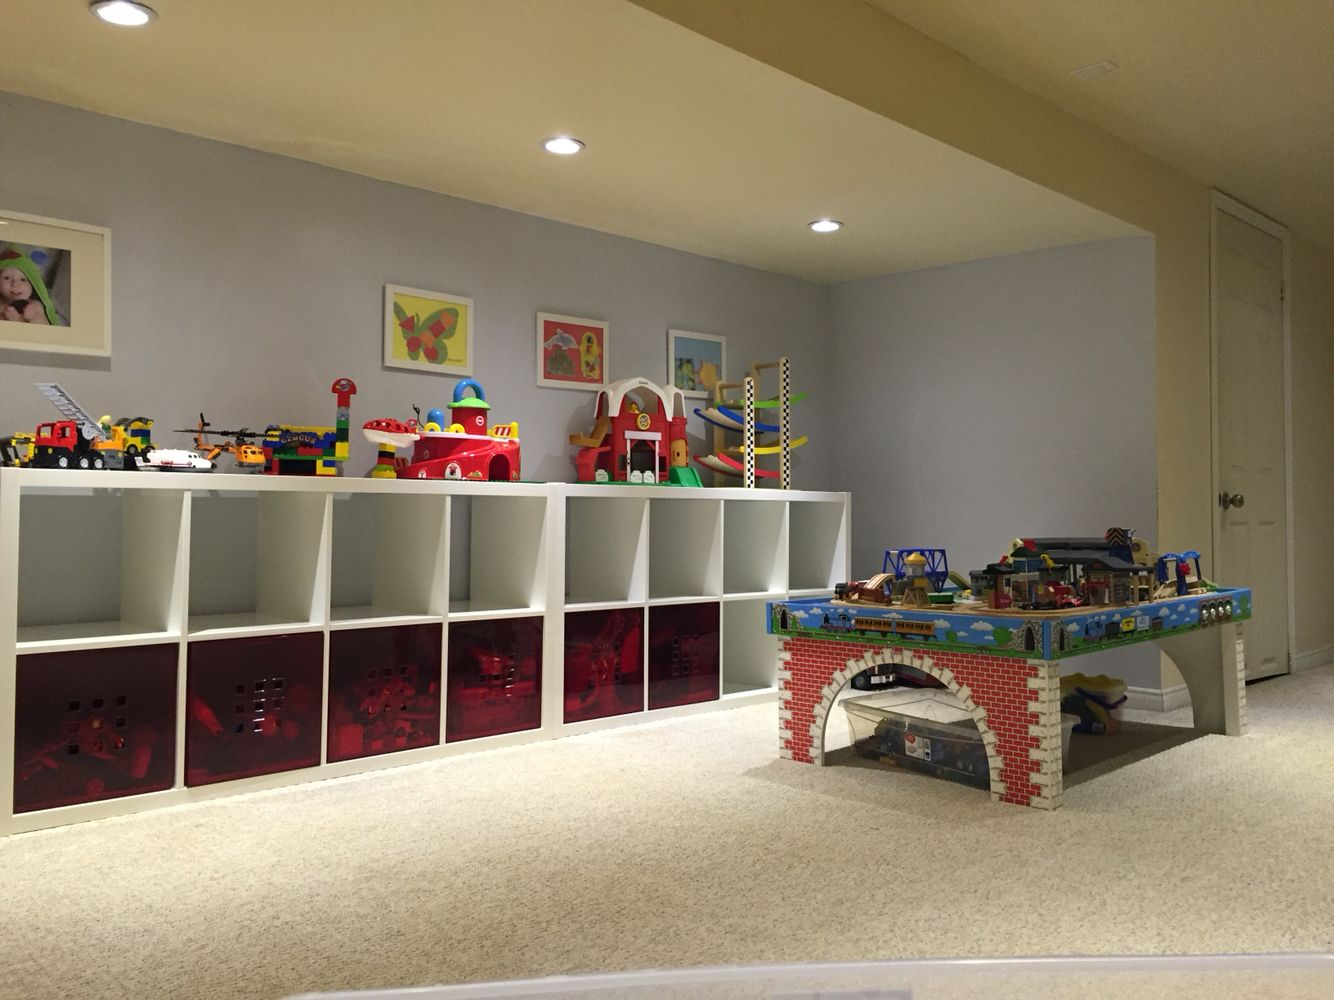 Playroom storage systems - Ikea Kallax System With Lekman Storage Bins So Much Space For Toys Lego